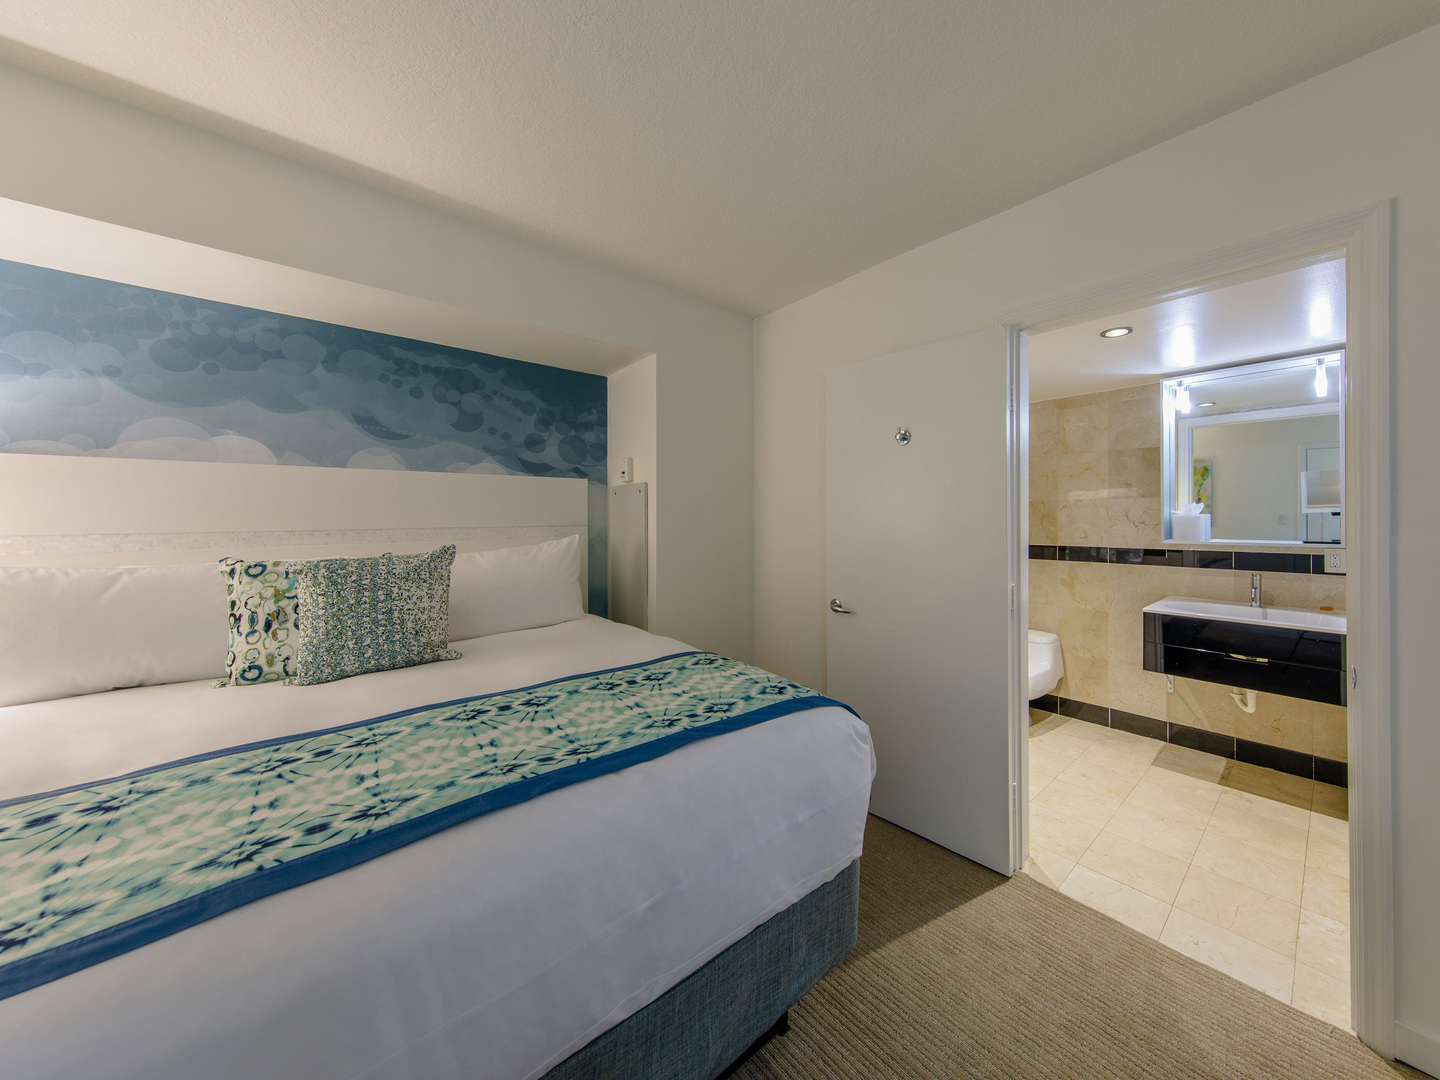 Marriott Vacation Club Pulse<span class='trademark'>®</span>, South Beach Studio Suite 1-Bedroom. Marriott Vacation Club Pulse<span class='trademark'>®</span>, South Beach is located in Miami Beach, Florida United States.